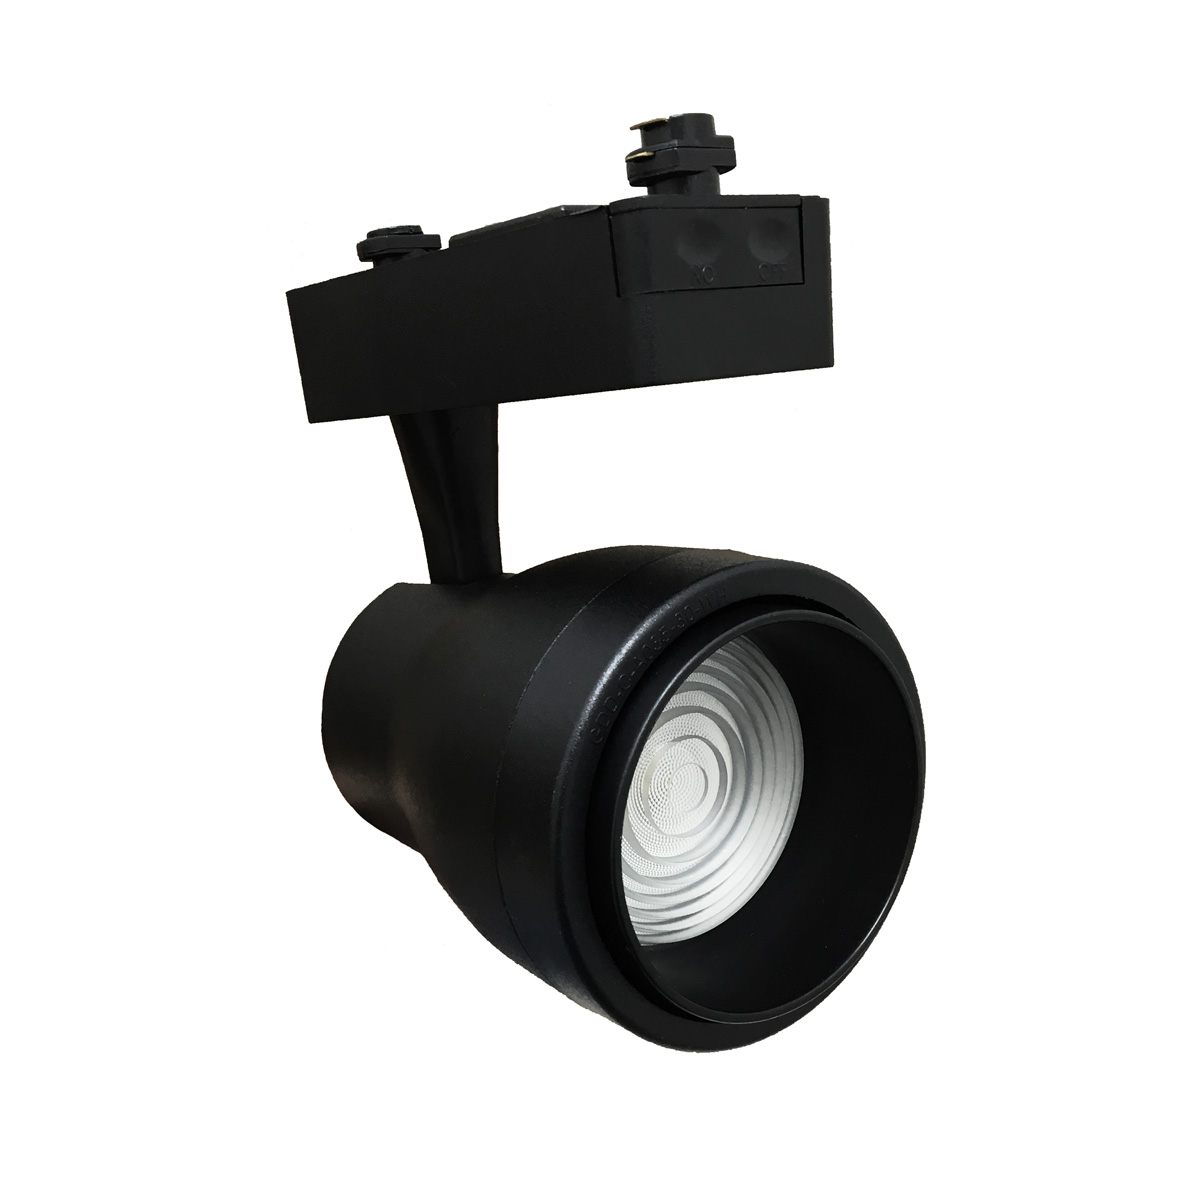 LED spotlight rail, single-PHASE 15w, adjustable cone of light with adjustable BLACK